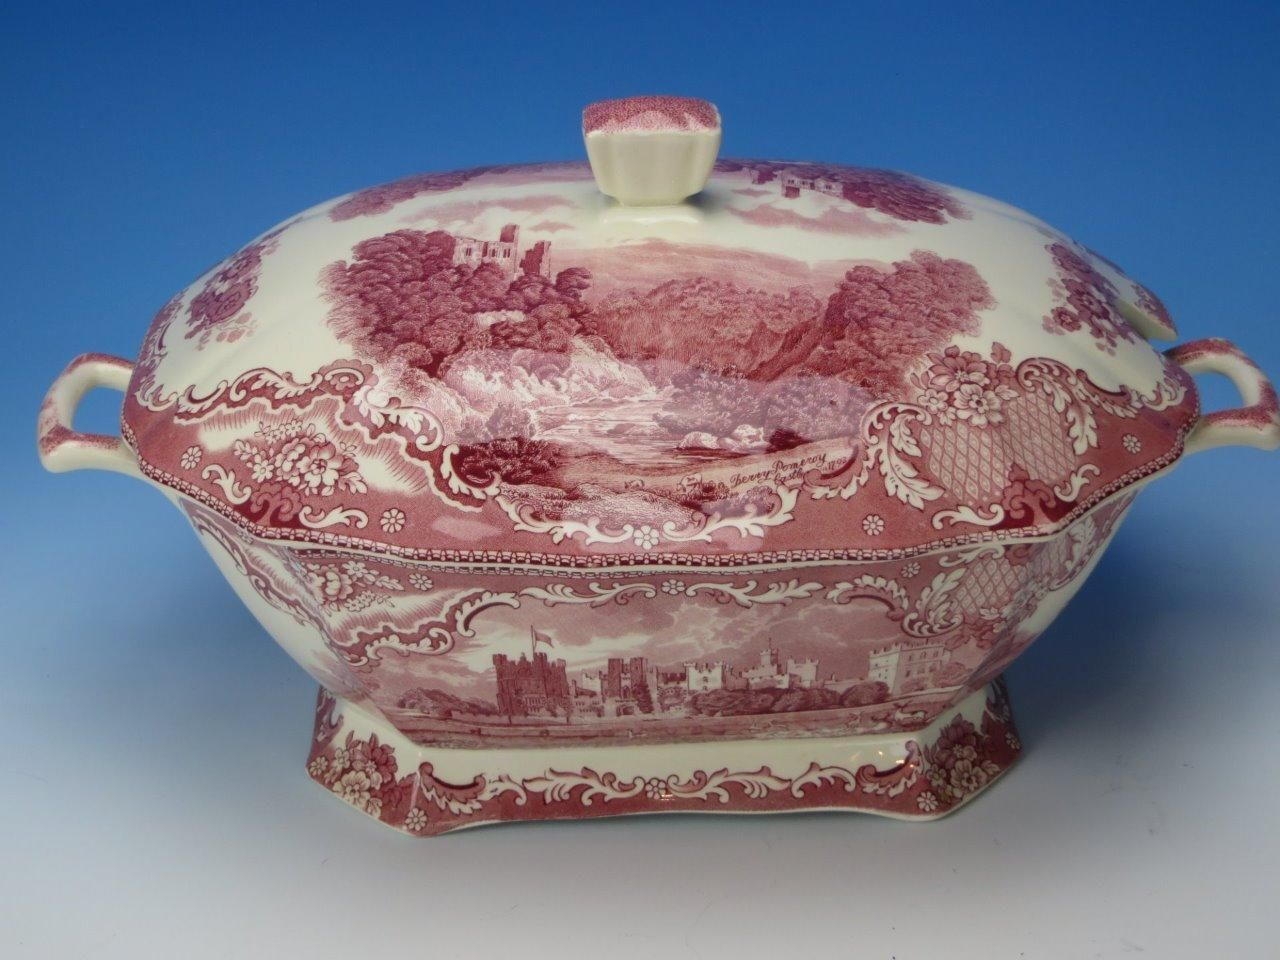 Johnson Brothers Old Britain Castles Pink/Red Transferware - Soup Tureen picclick.com & Johnson Brothers Old Britain Castles Pink/Red Transferware - Soup ...